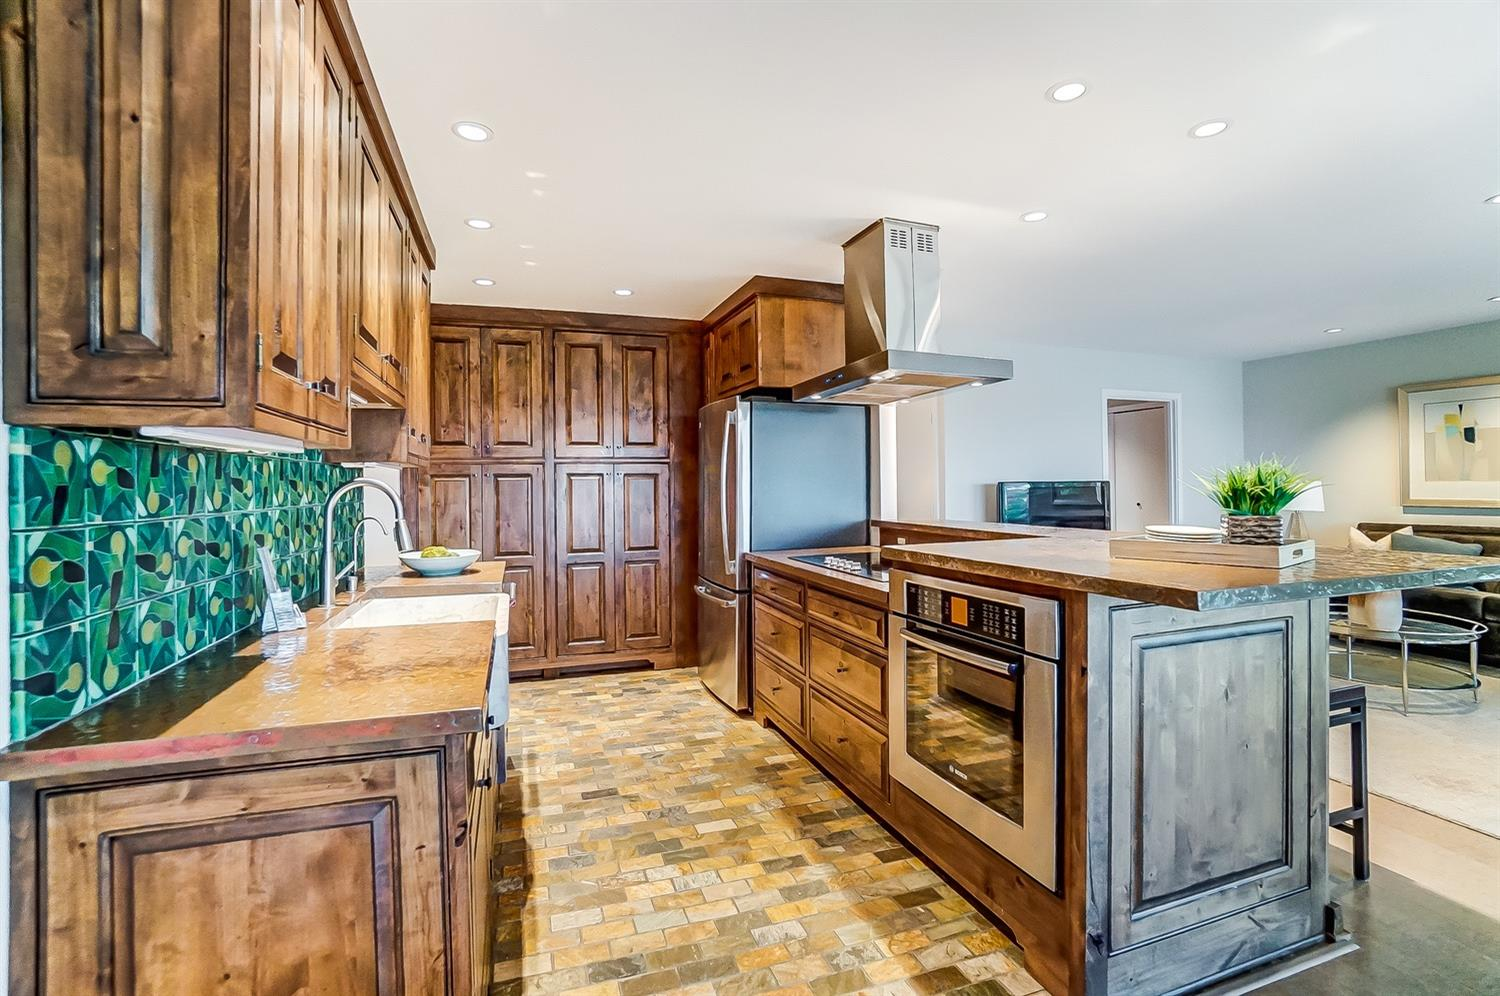 The kitchen features custom wood cabinets and copper countertops throughout, handmade artisan backsplash tile and a heated tile floor.